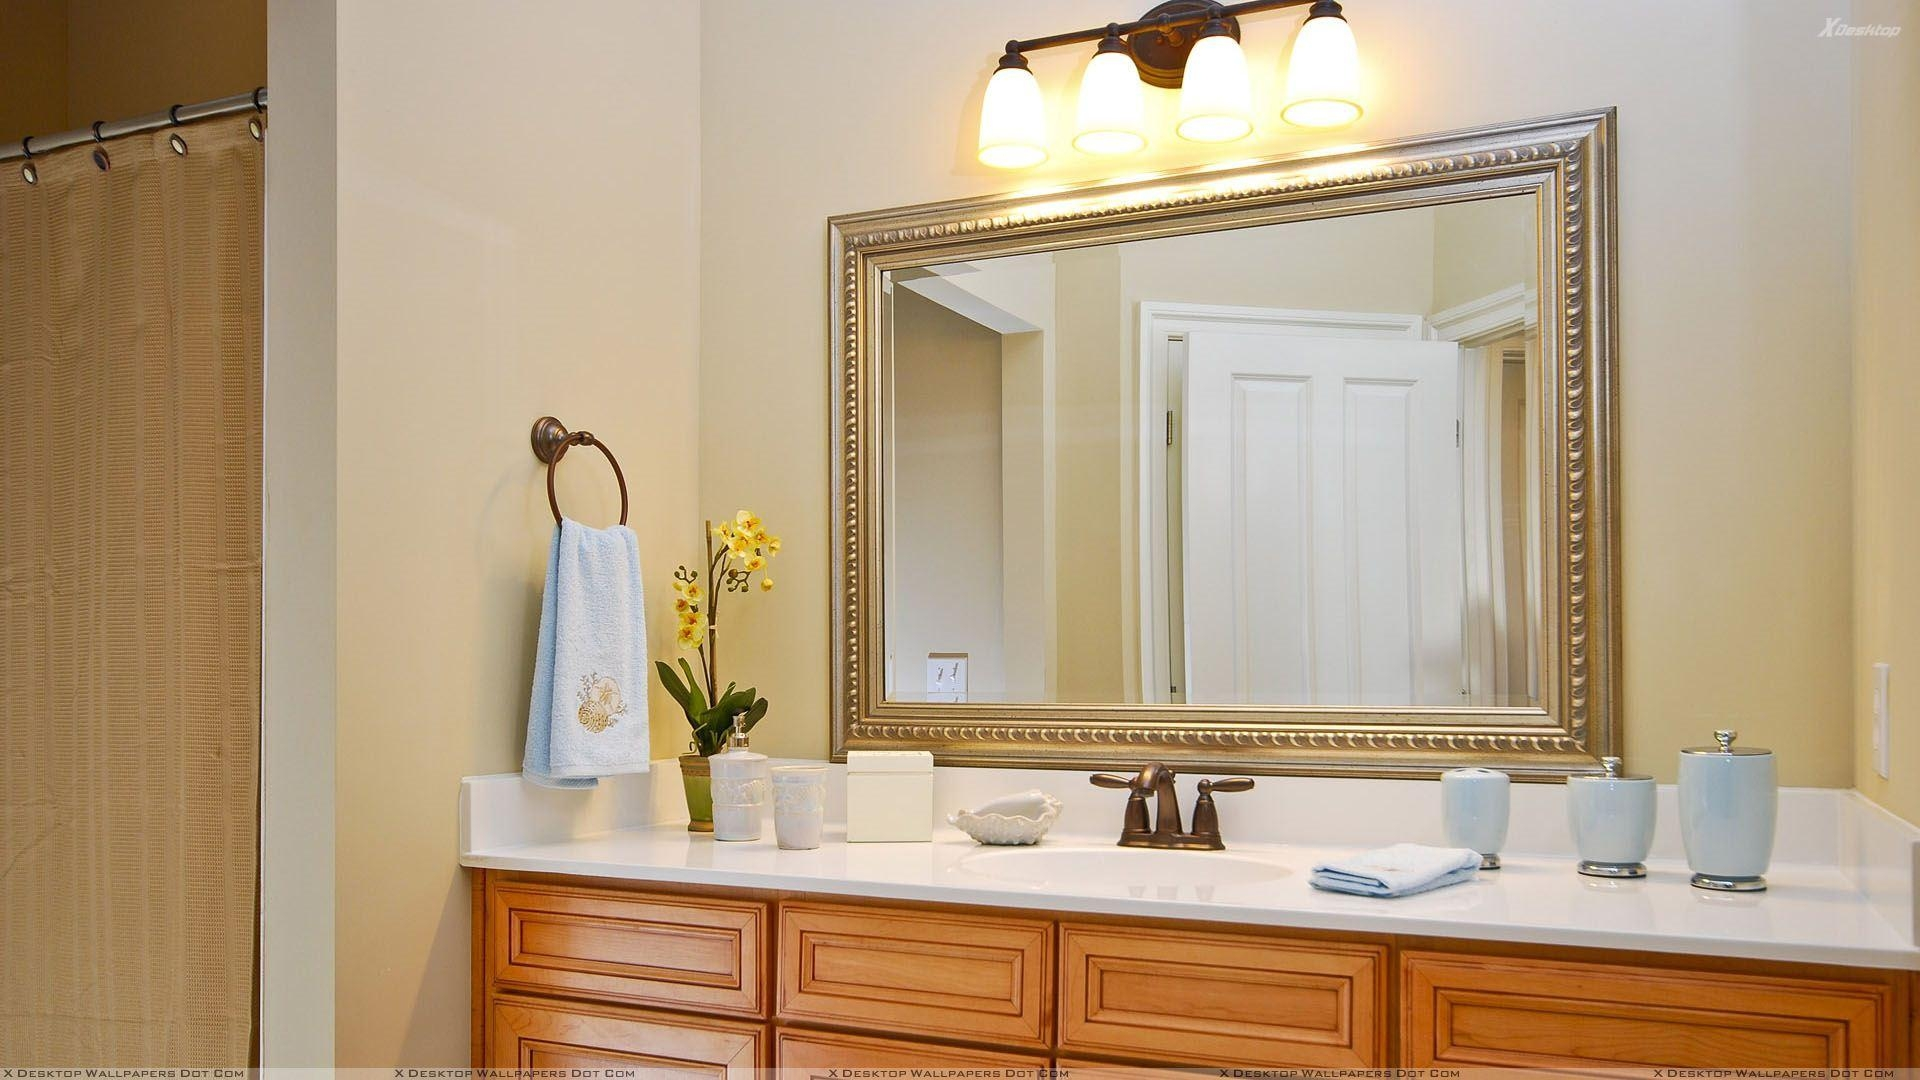 Bathroom : Beautiful Bathroom Vanity Mirrors Decorative Mirrors For Bathroom Mirrors Ideas With Vanity (Image 5 of 20)